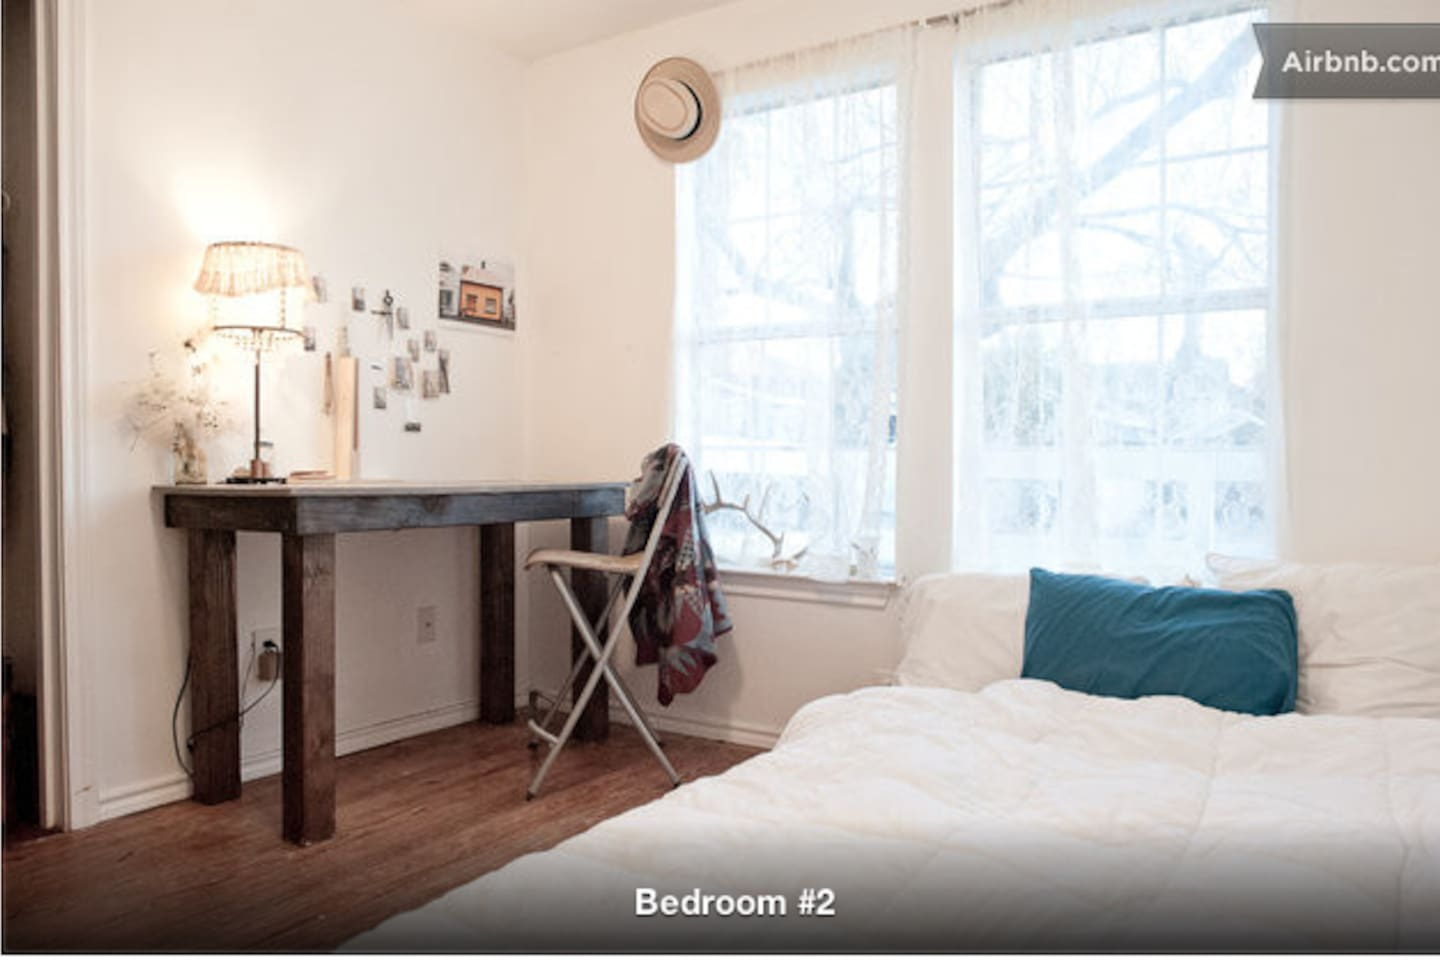 Hardwood floors, a memory foam mattress, fresh linens and closet await you in the White Bright room!  (for more pics of this house see my lisitng under the Saffron House)